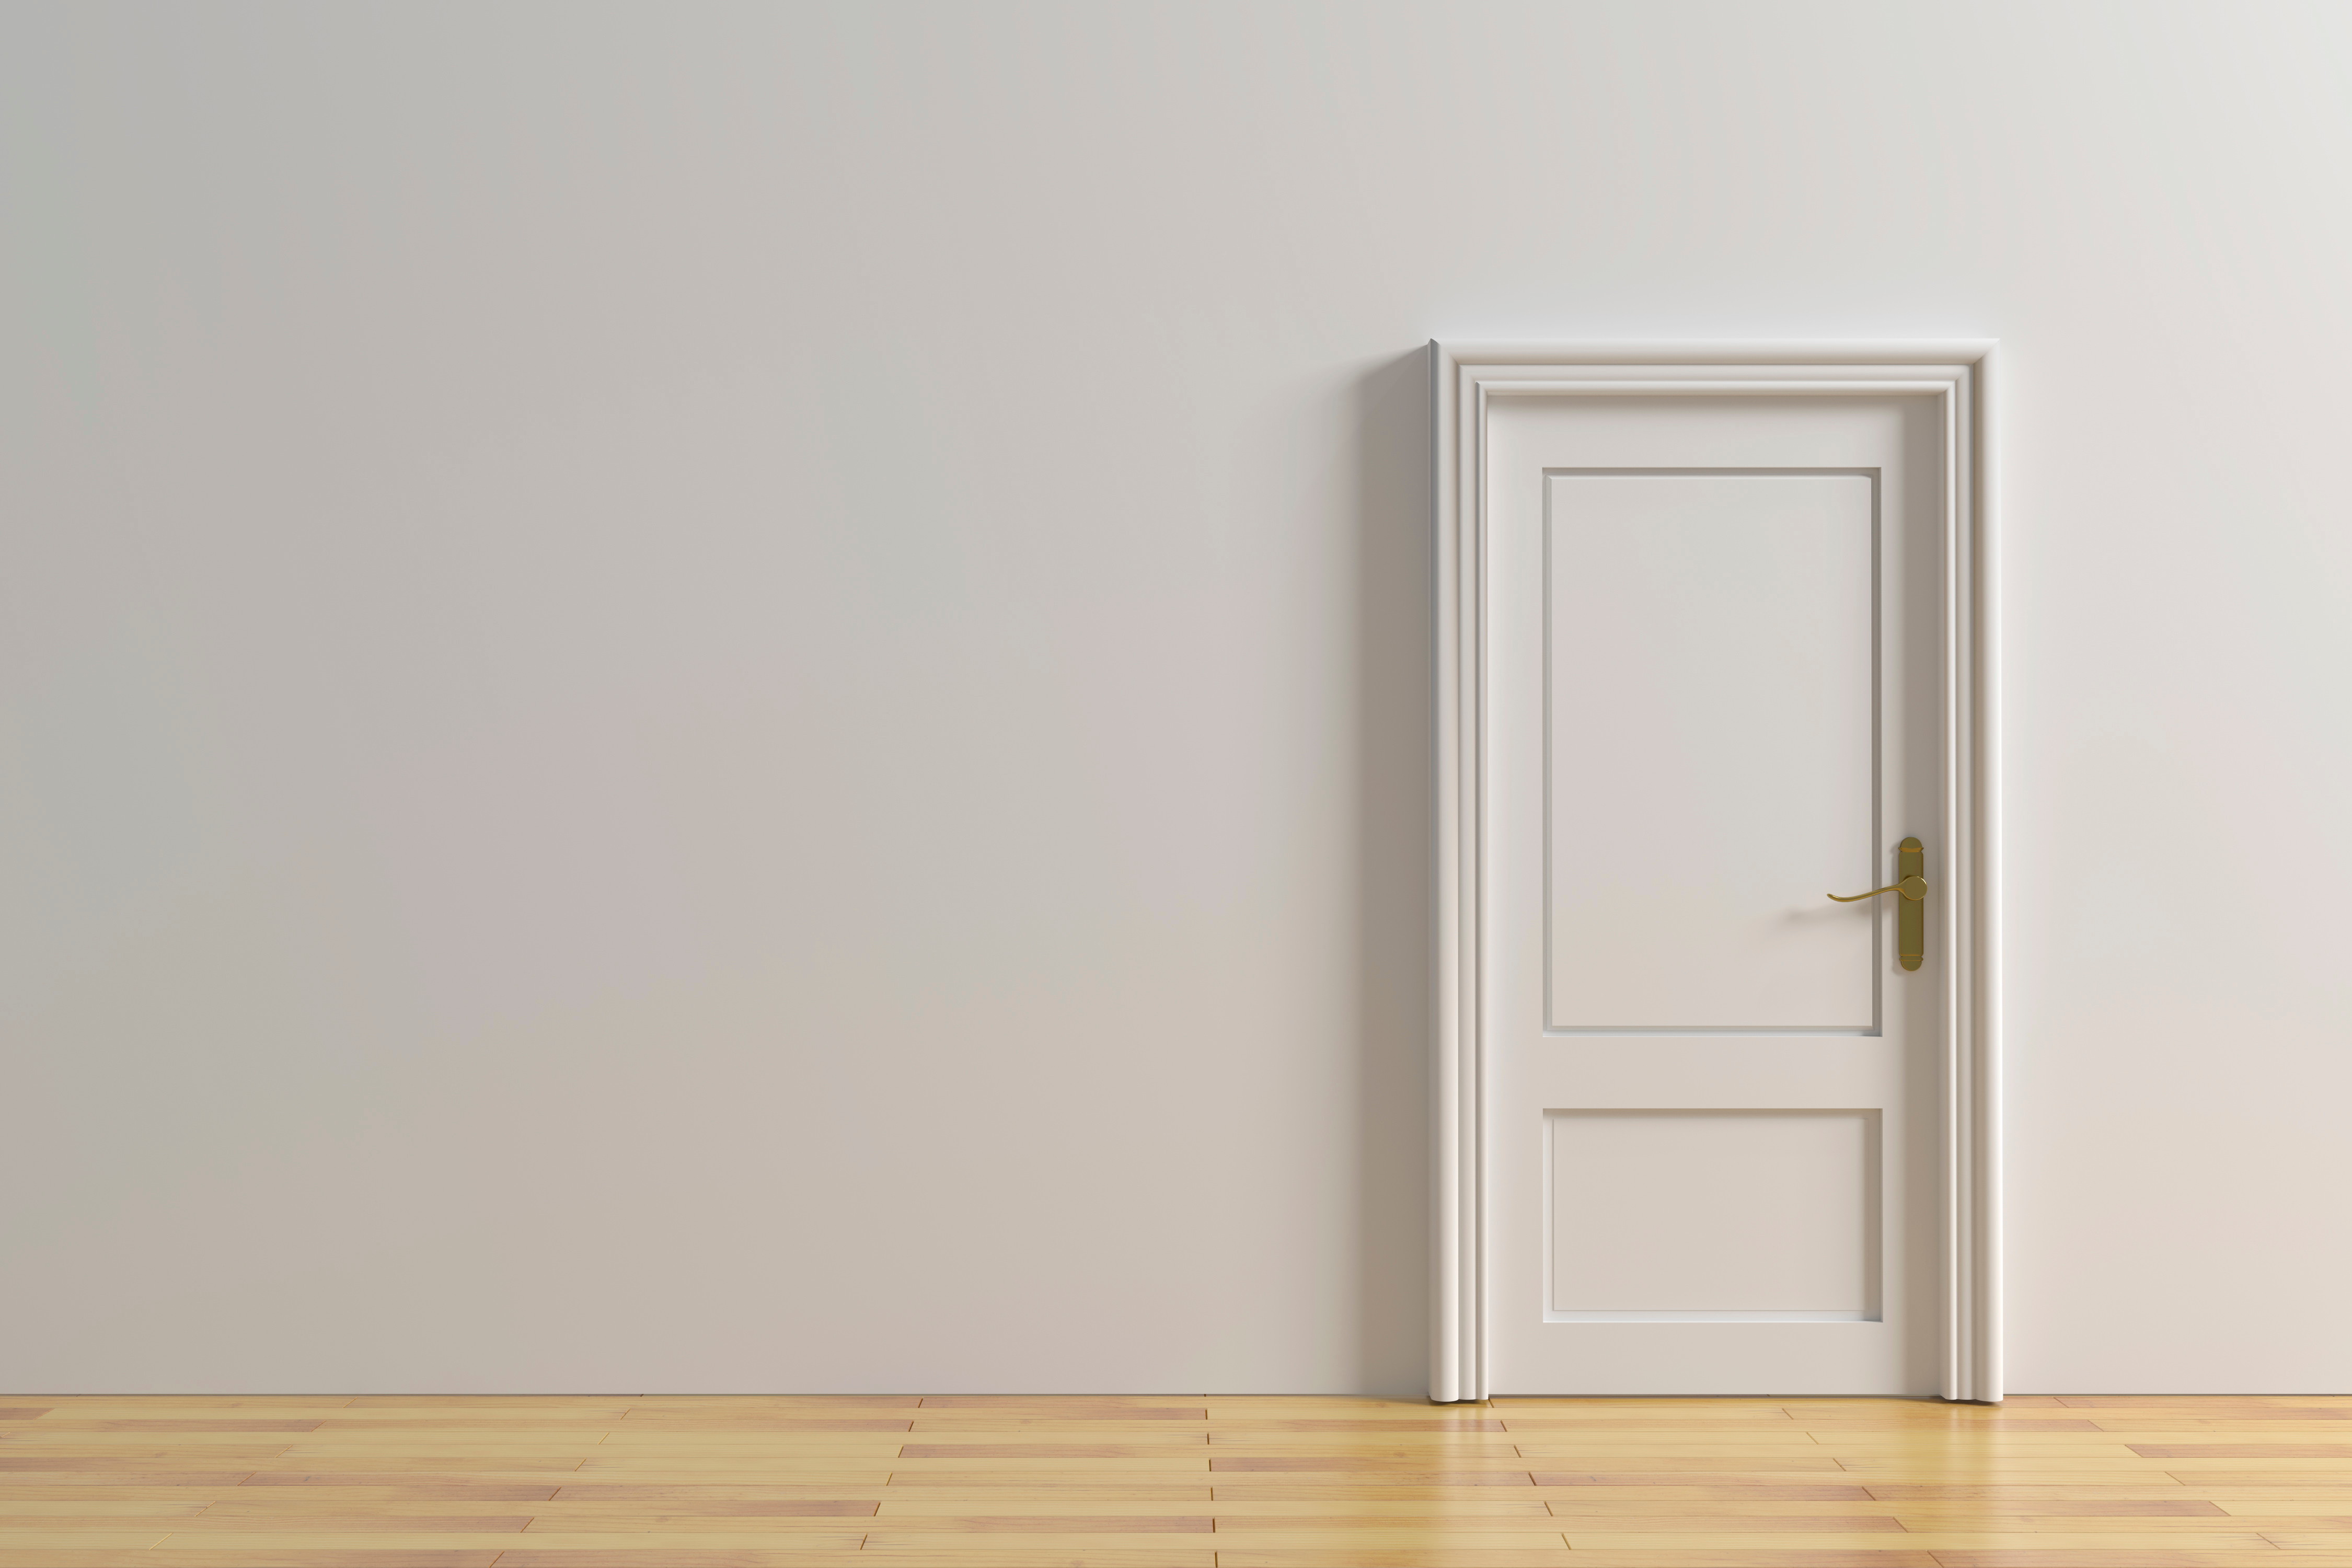 Should Interior Doors Be Painted the Same Color as the Walls? | Home ...